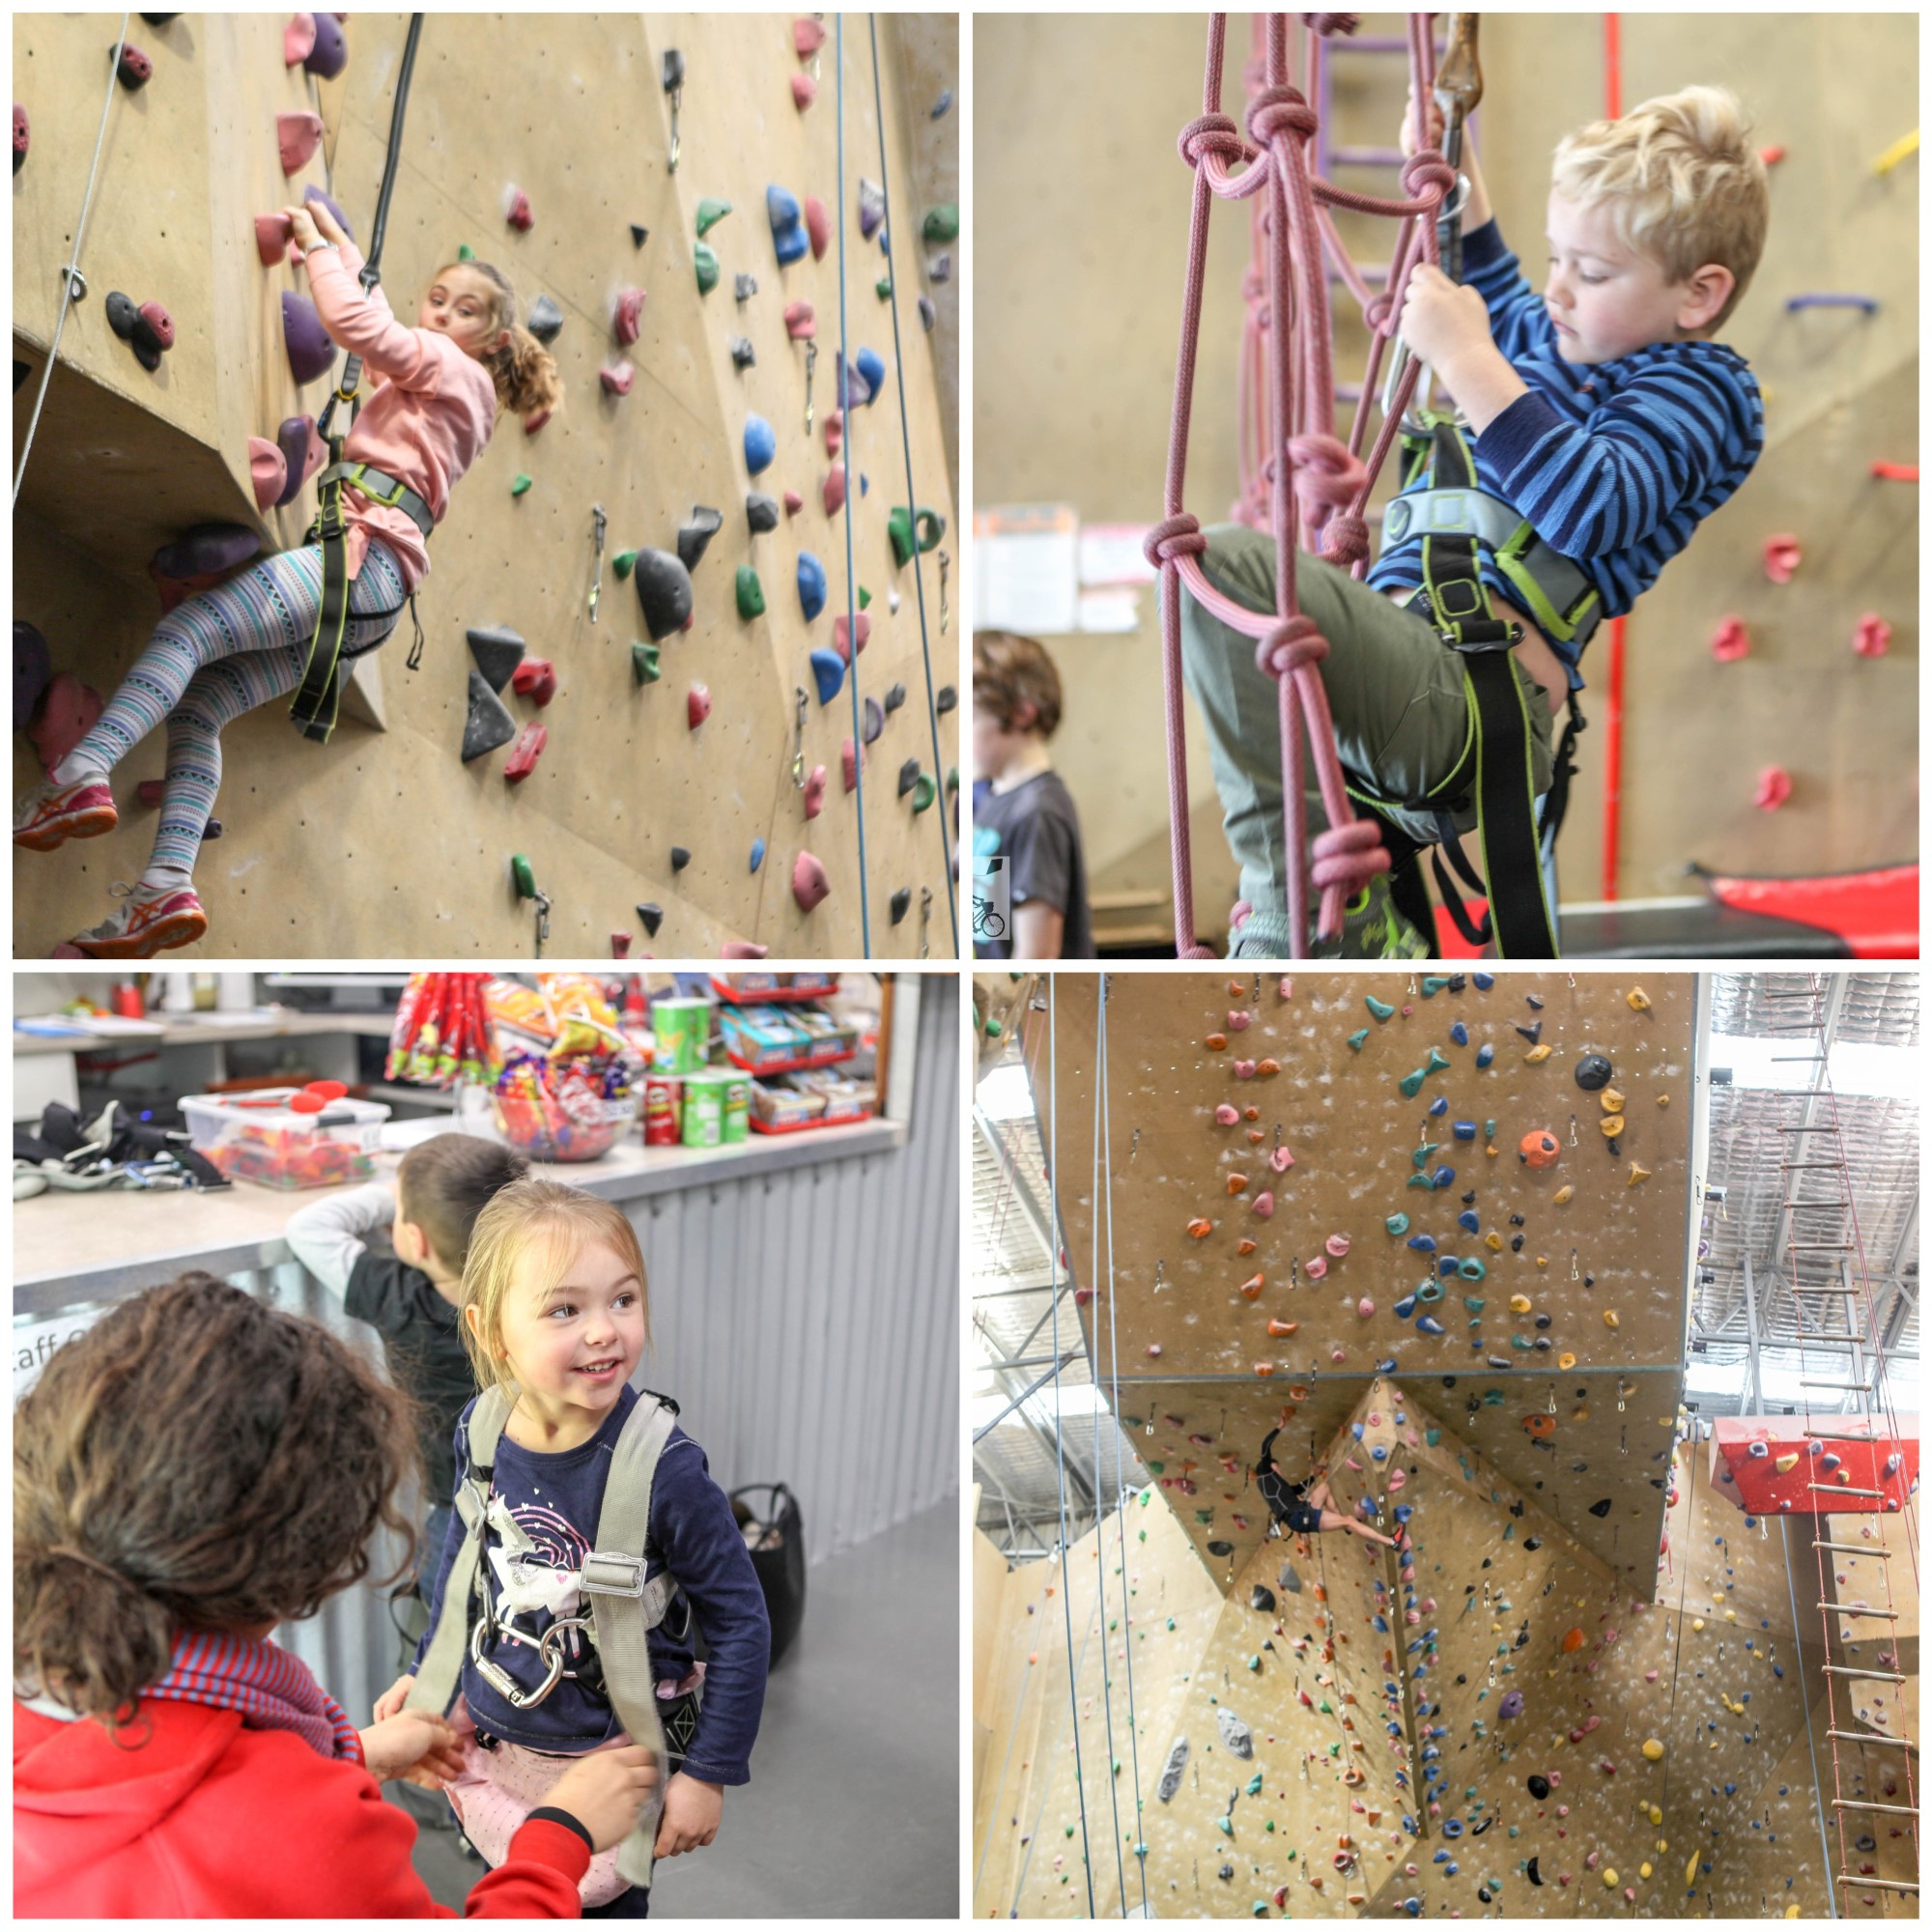 bayside rock climbing, carrum downs - mamma knows south